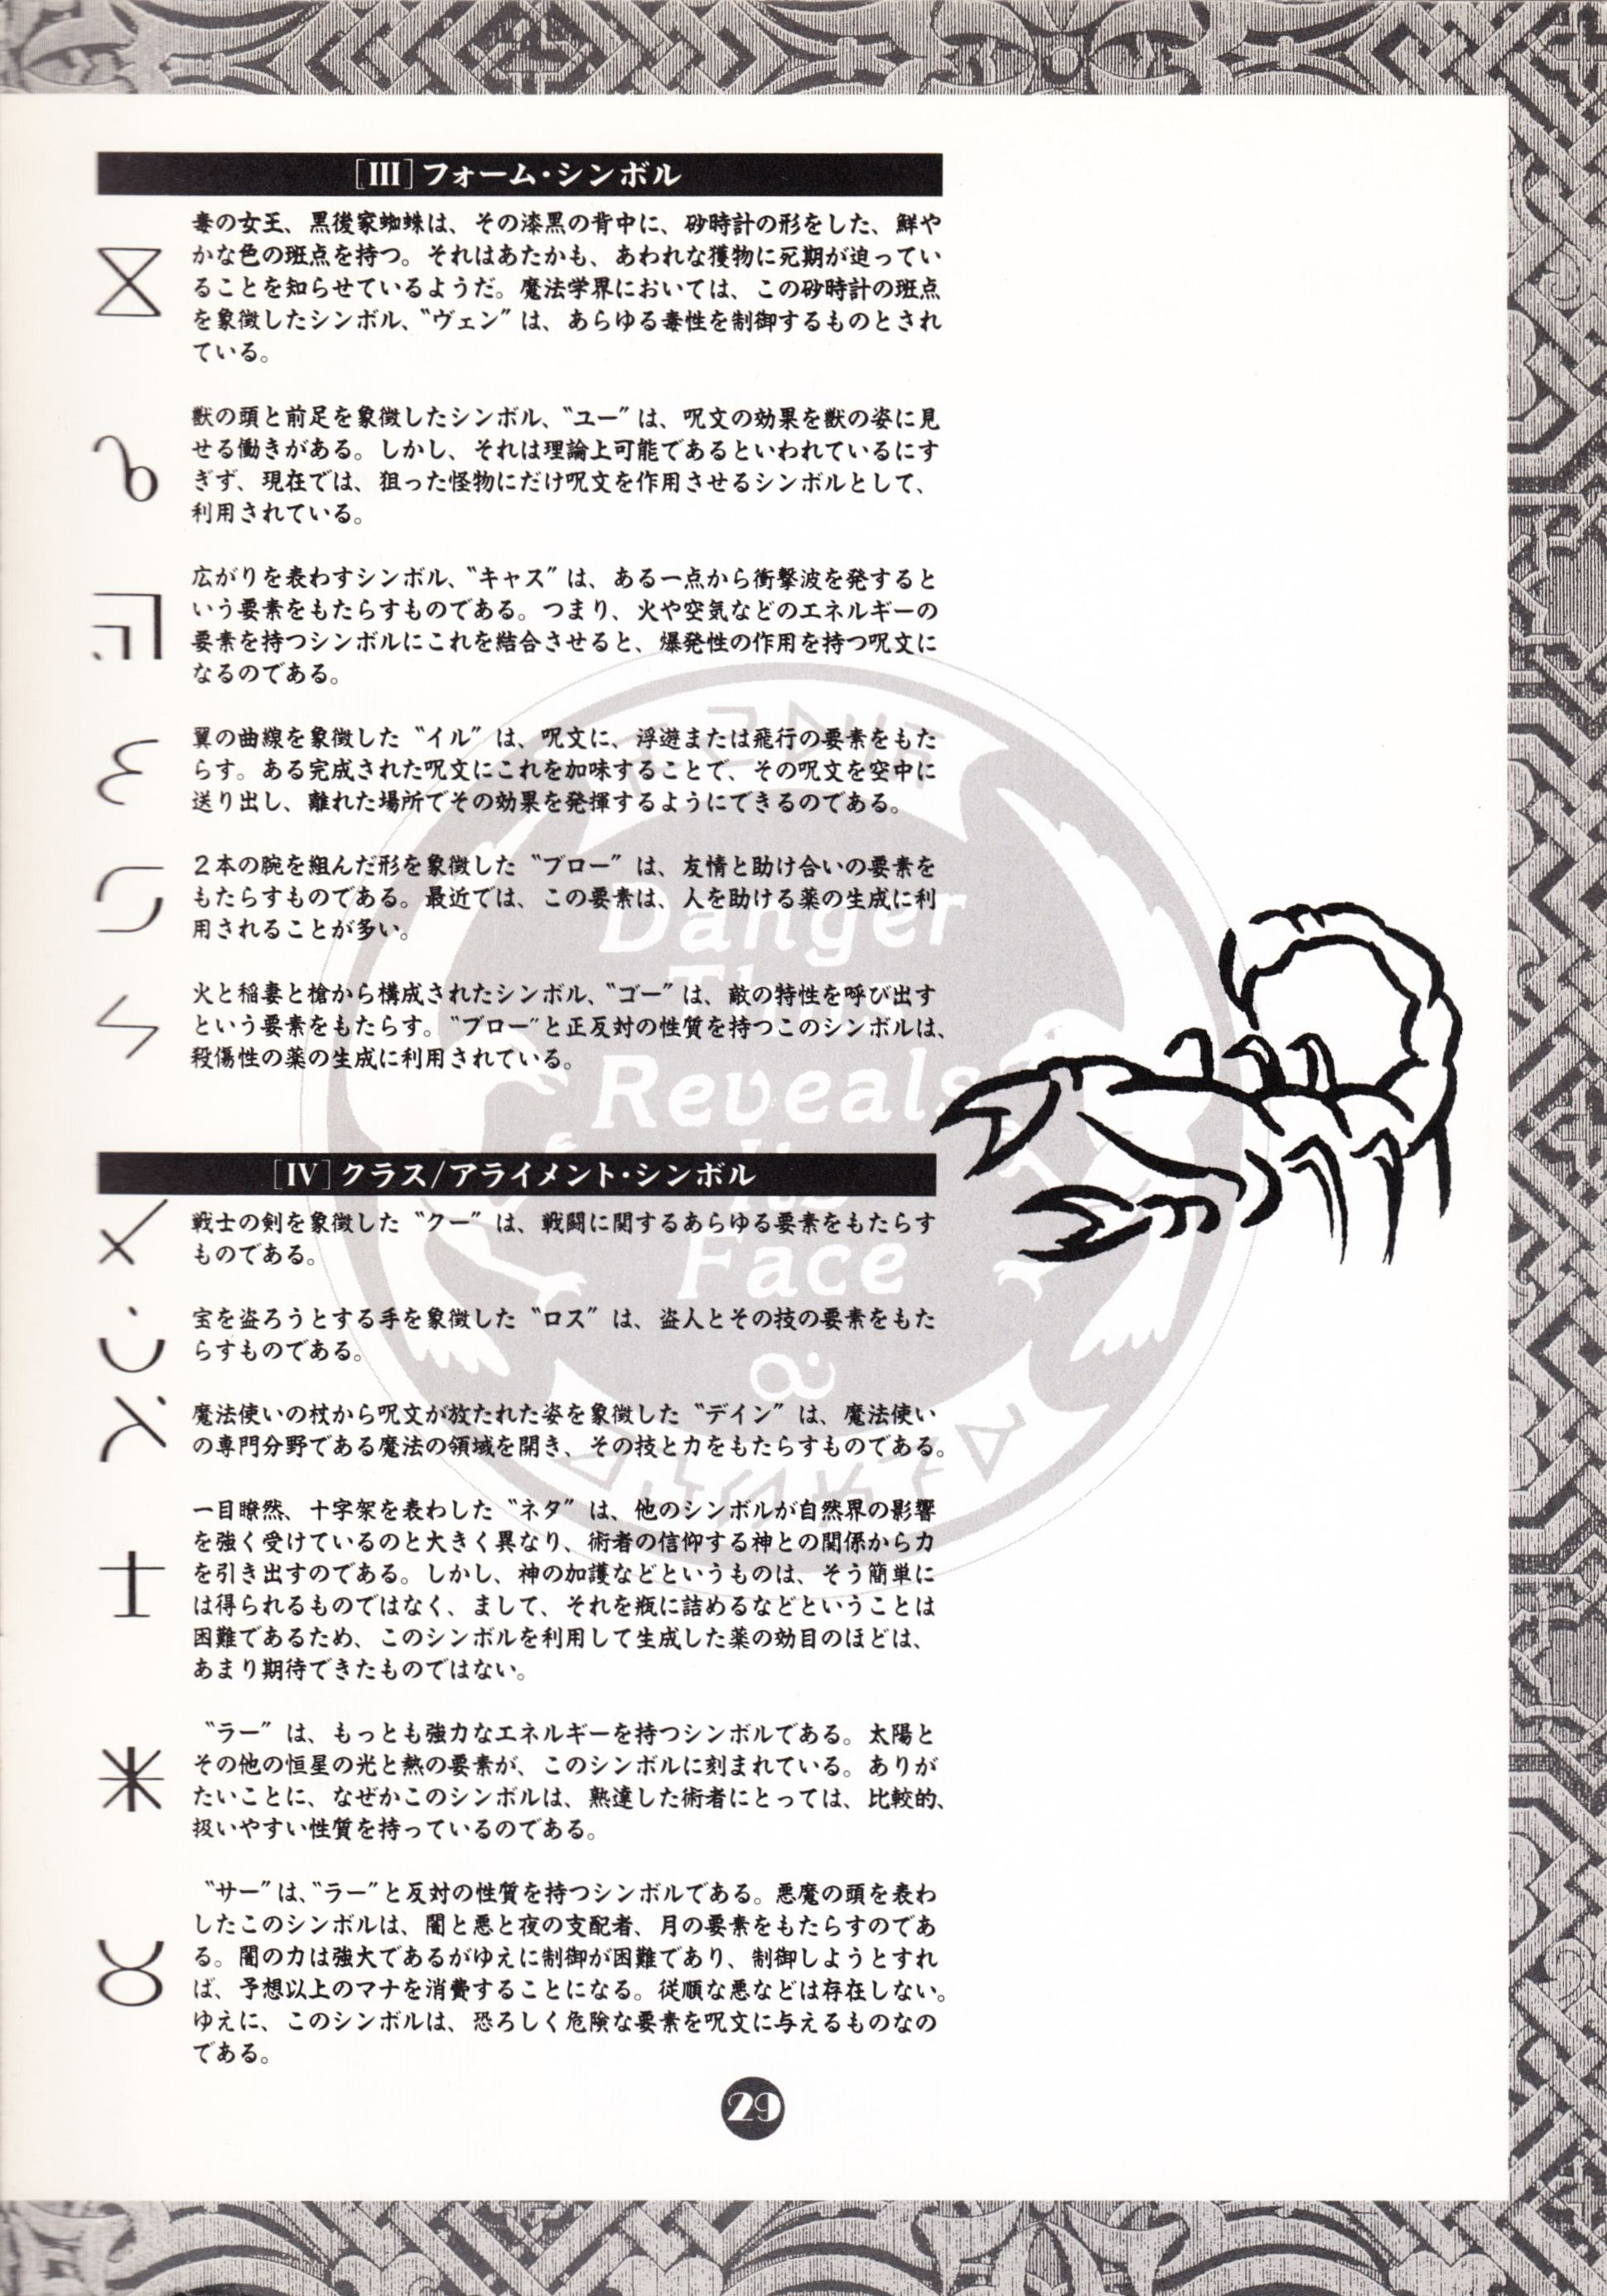 Game - Chaos Strikes Back - JP - FM Towns - The Guidance Of Adventure - Page 031 - Scan